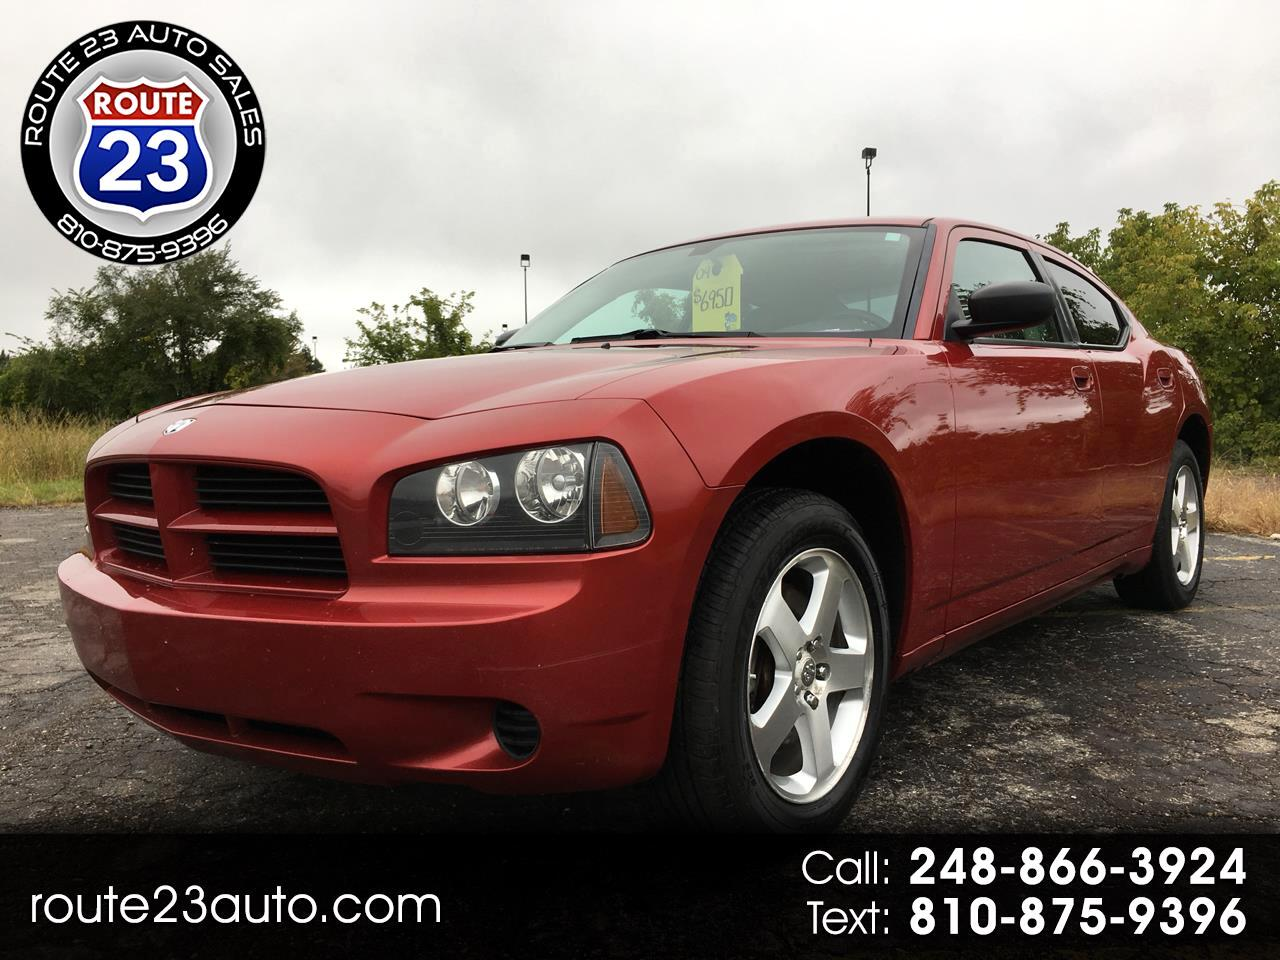 2009 Dodge Charger SE AWD